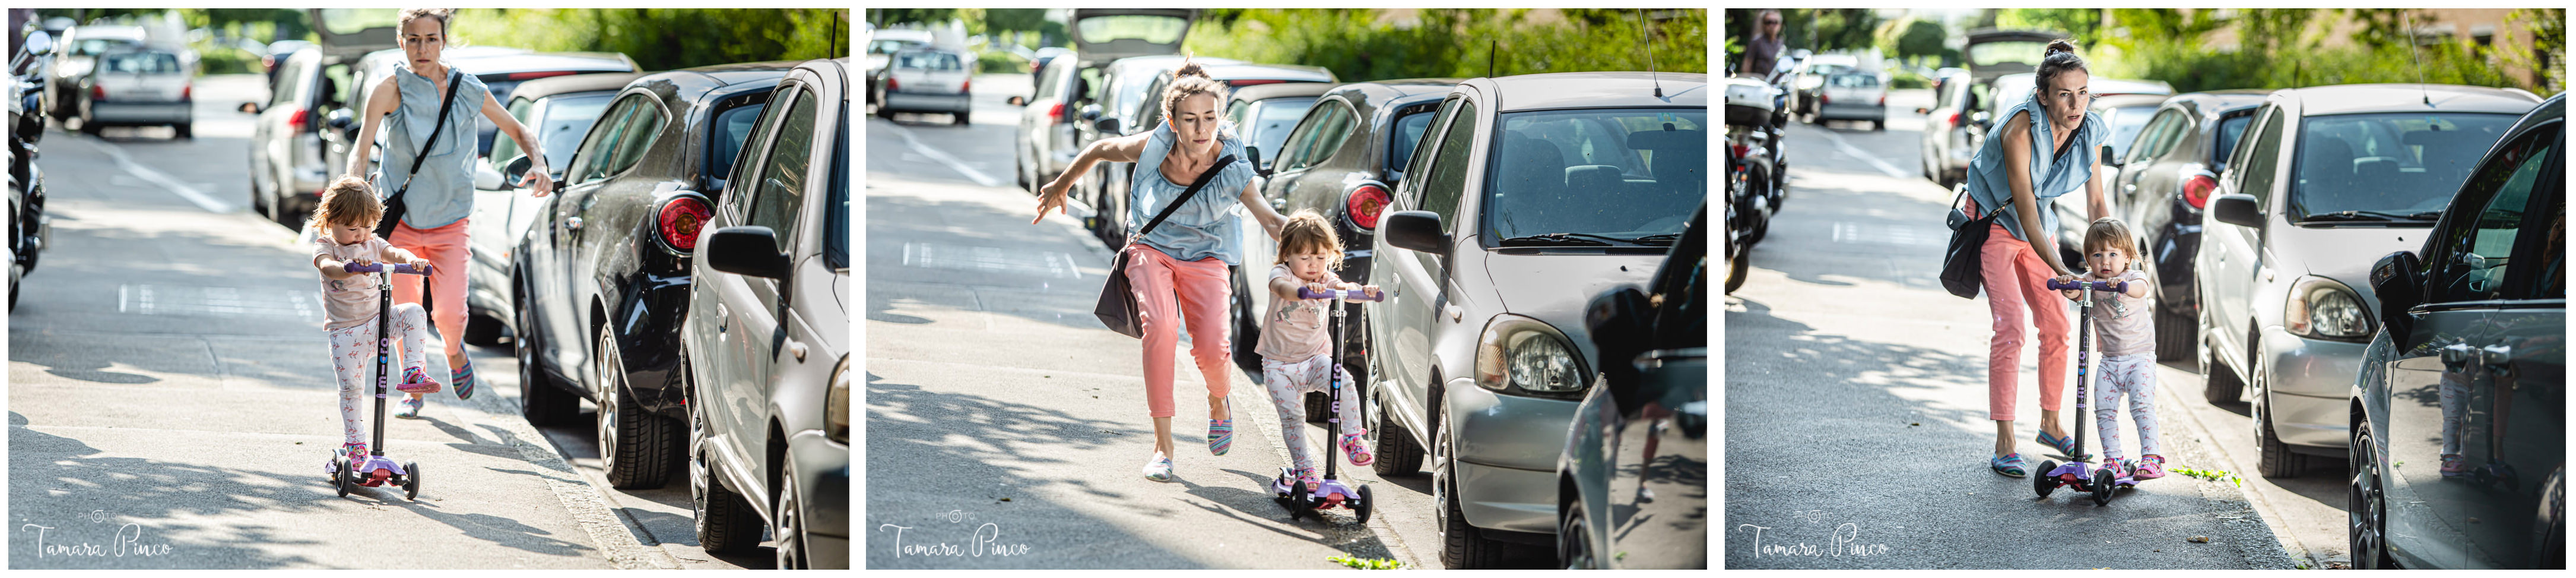 A mother runs after her little daughter who is riding a scooter and is close to fall